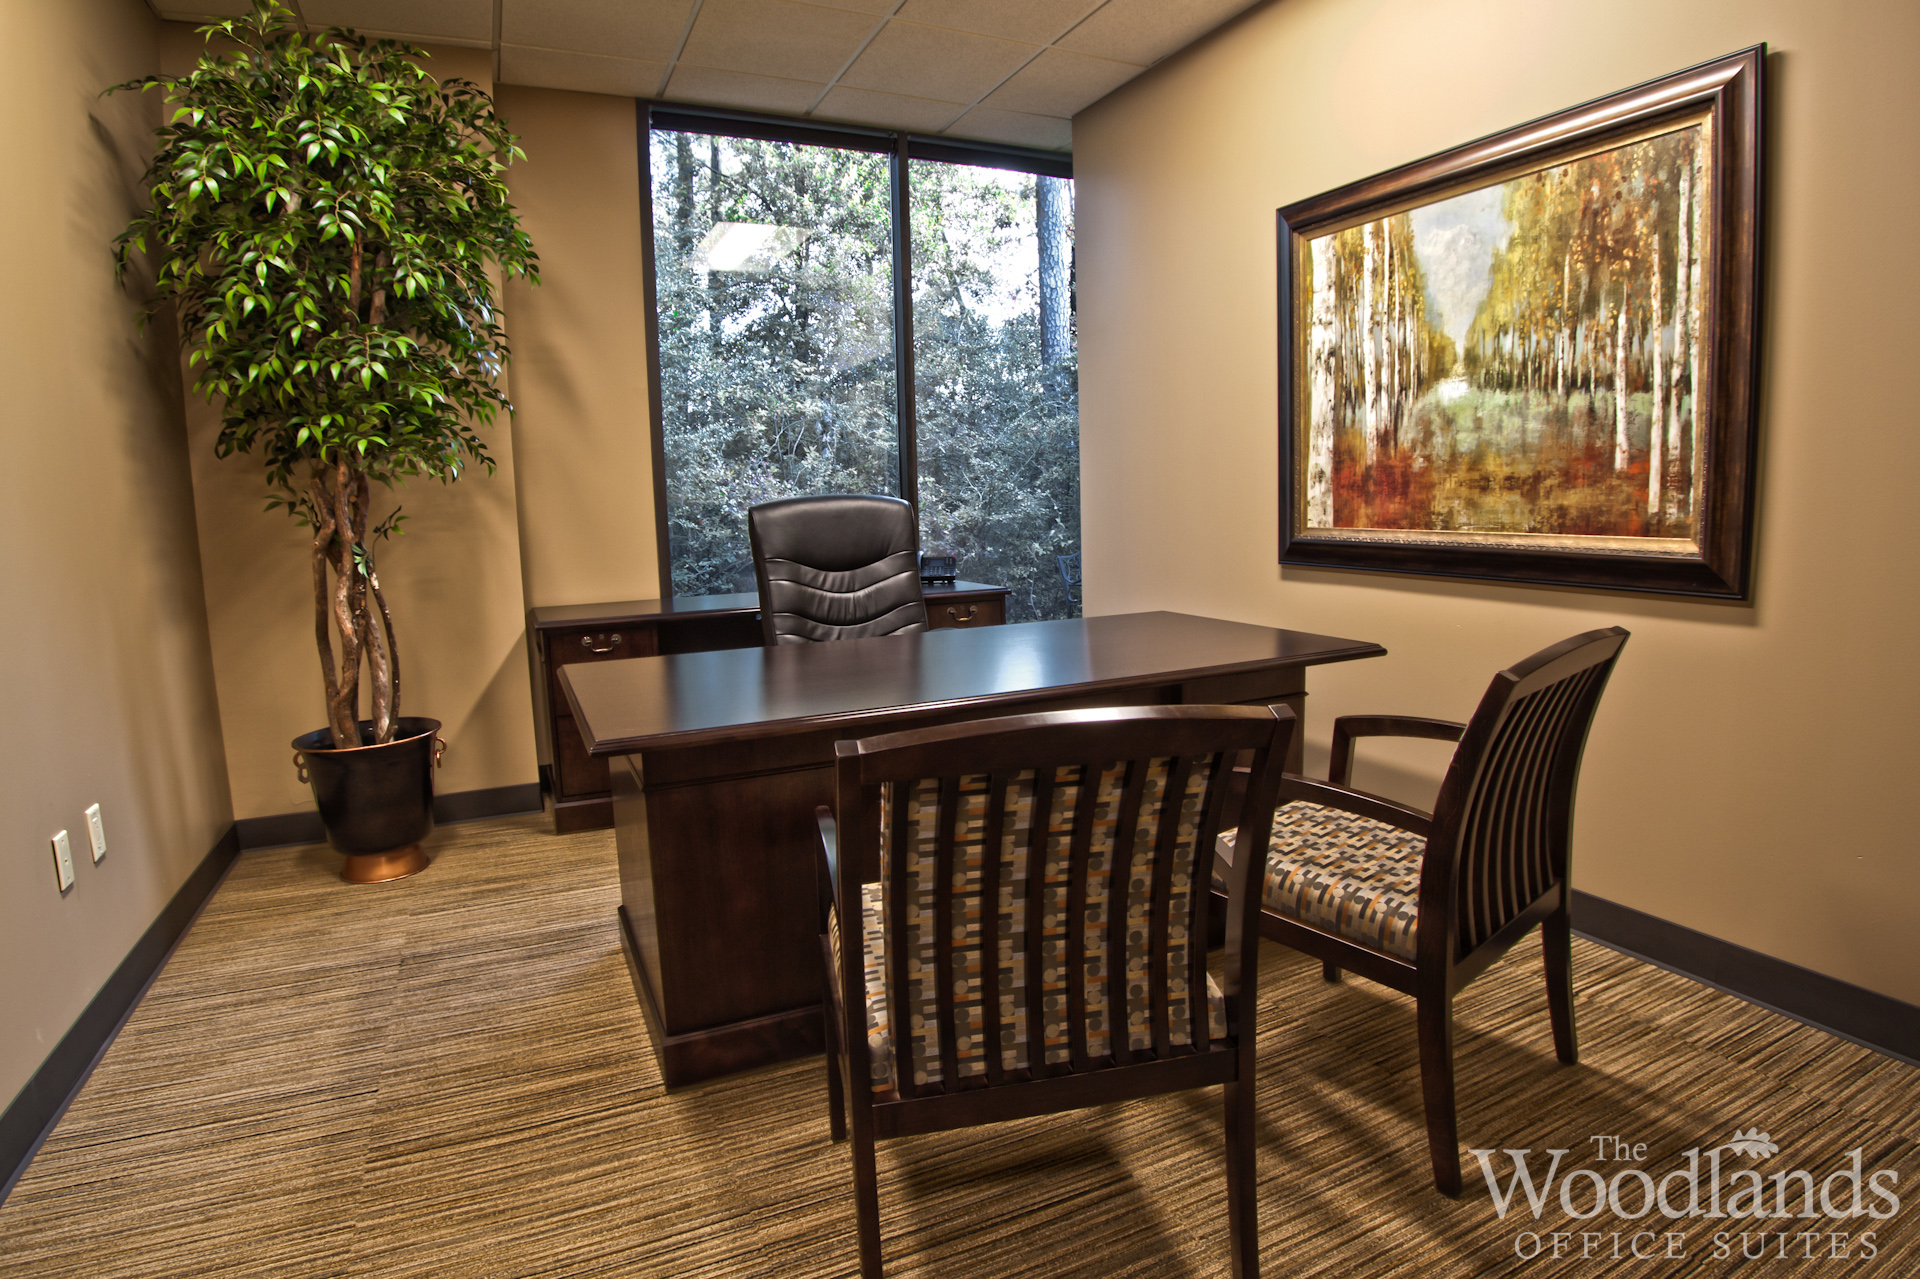 Photo gallery the woodlands office suites for Office pictures